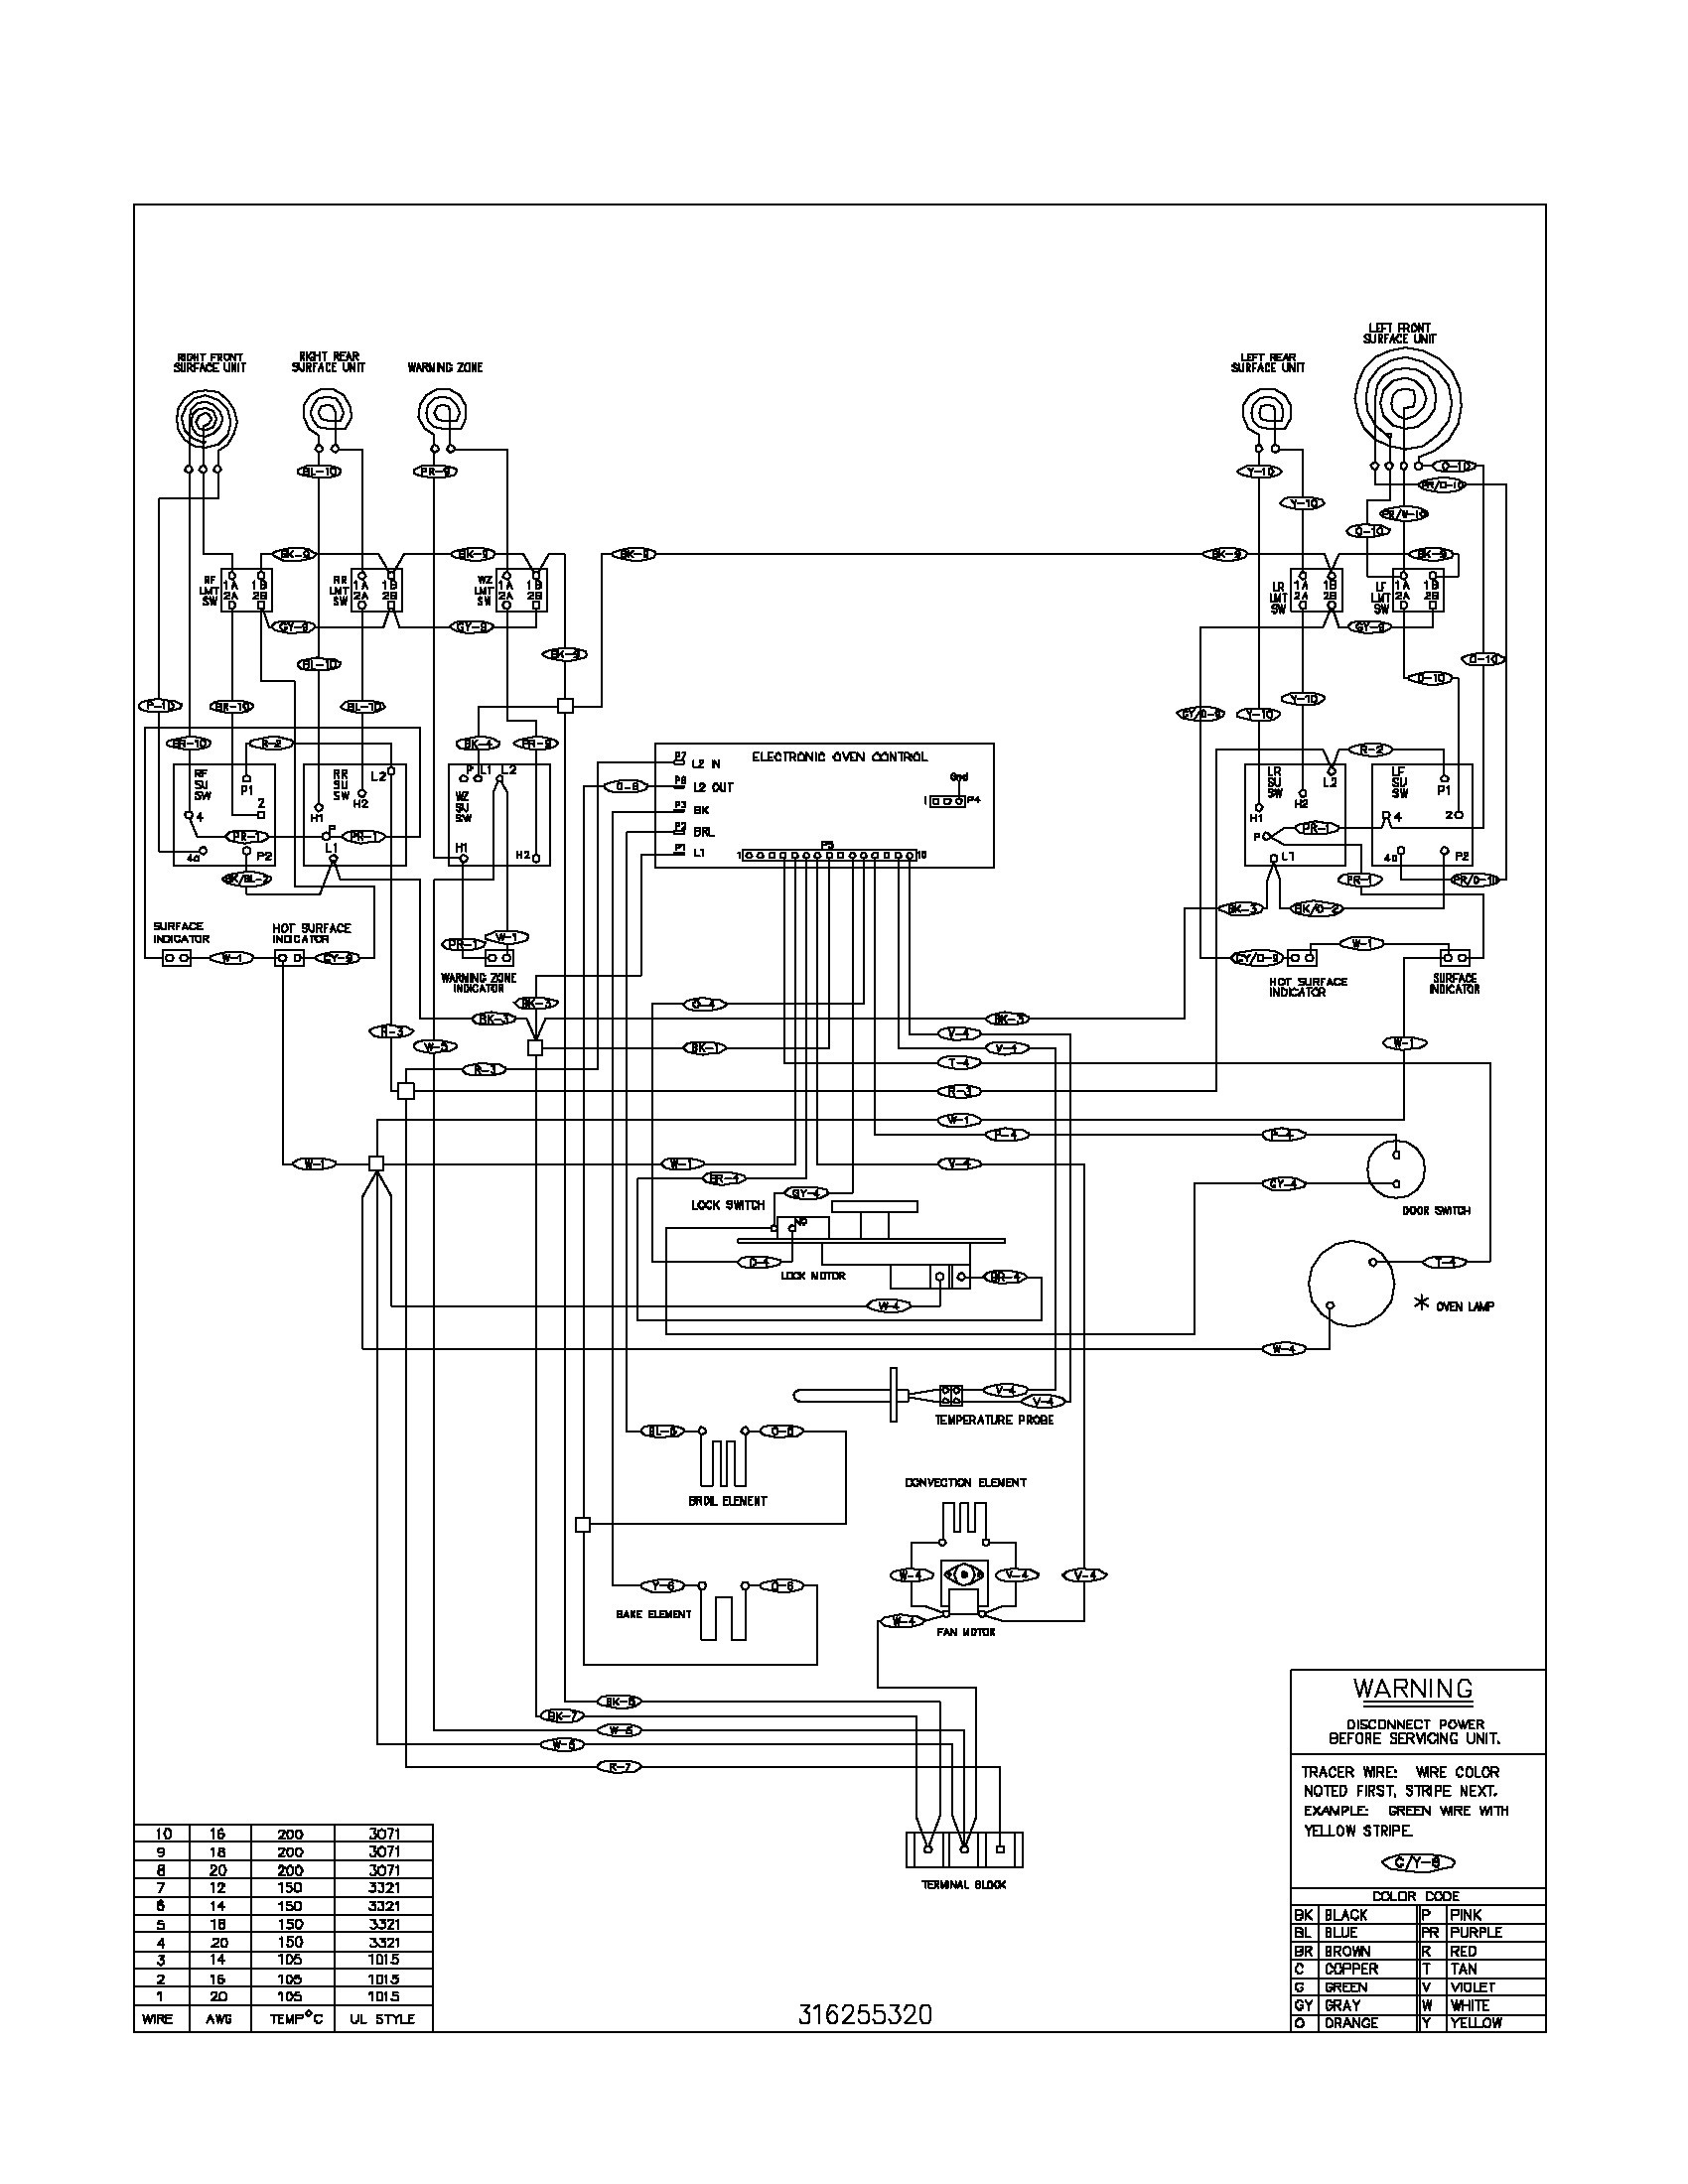 wiring diagram for whirlpool double ovens wiring diagram load wiring diagram for whirlpool double oven wiring diagram for whirlpool oven [ 1700 x 2200 Pixel ]